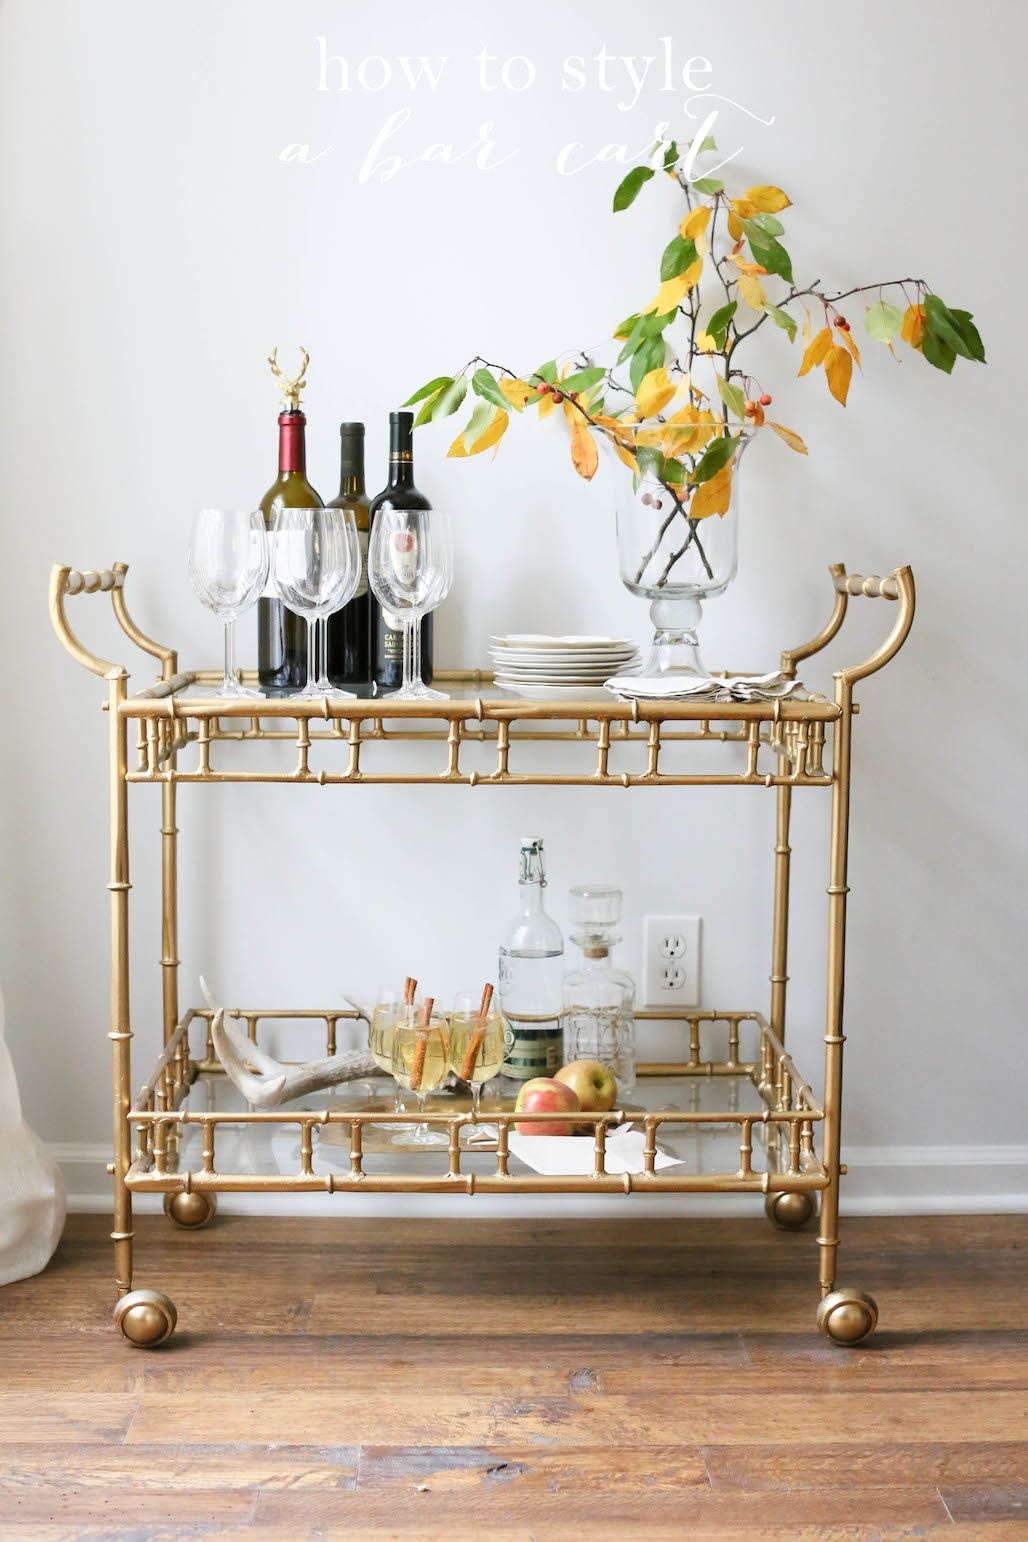 How to style a bar cart - the simple tips & tricks to great styling ...